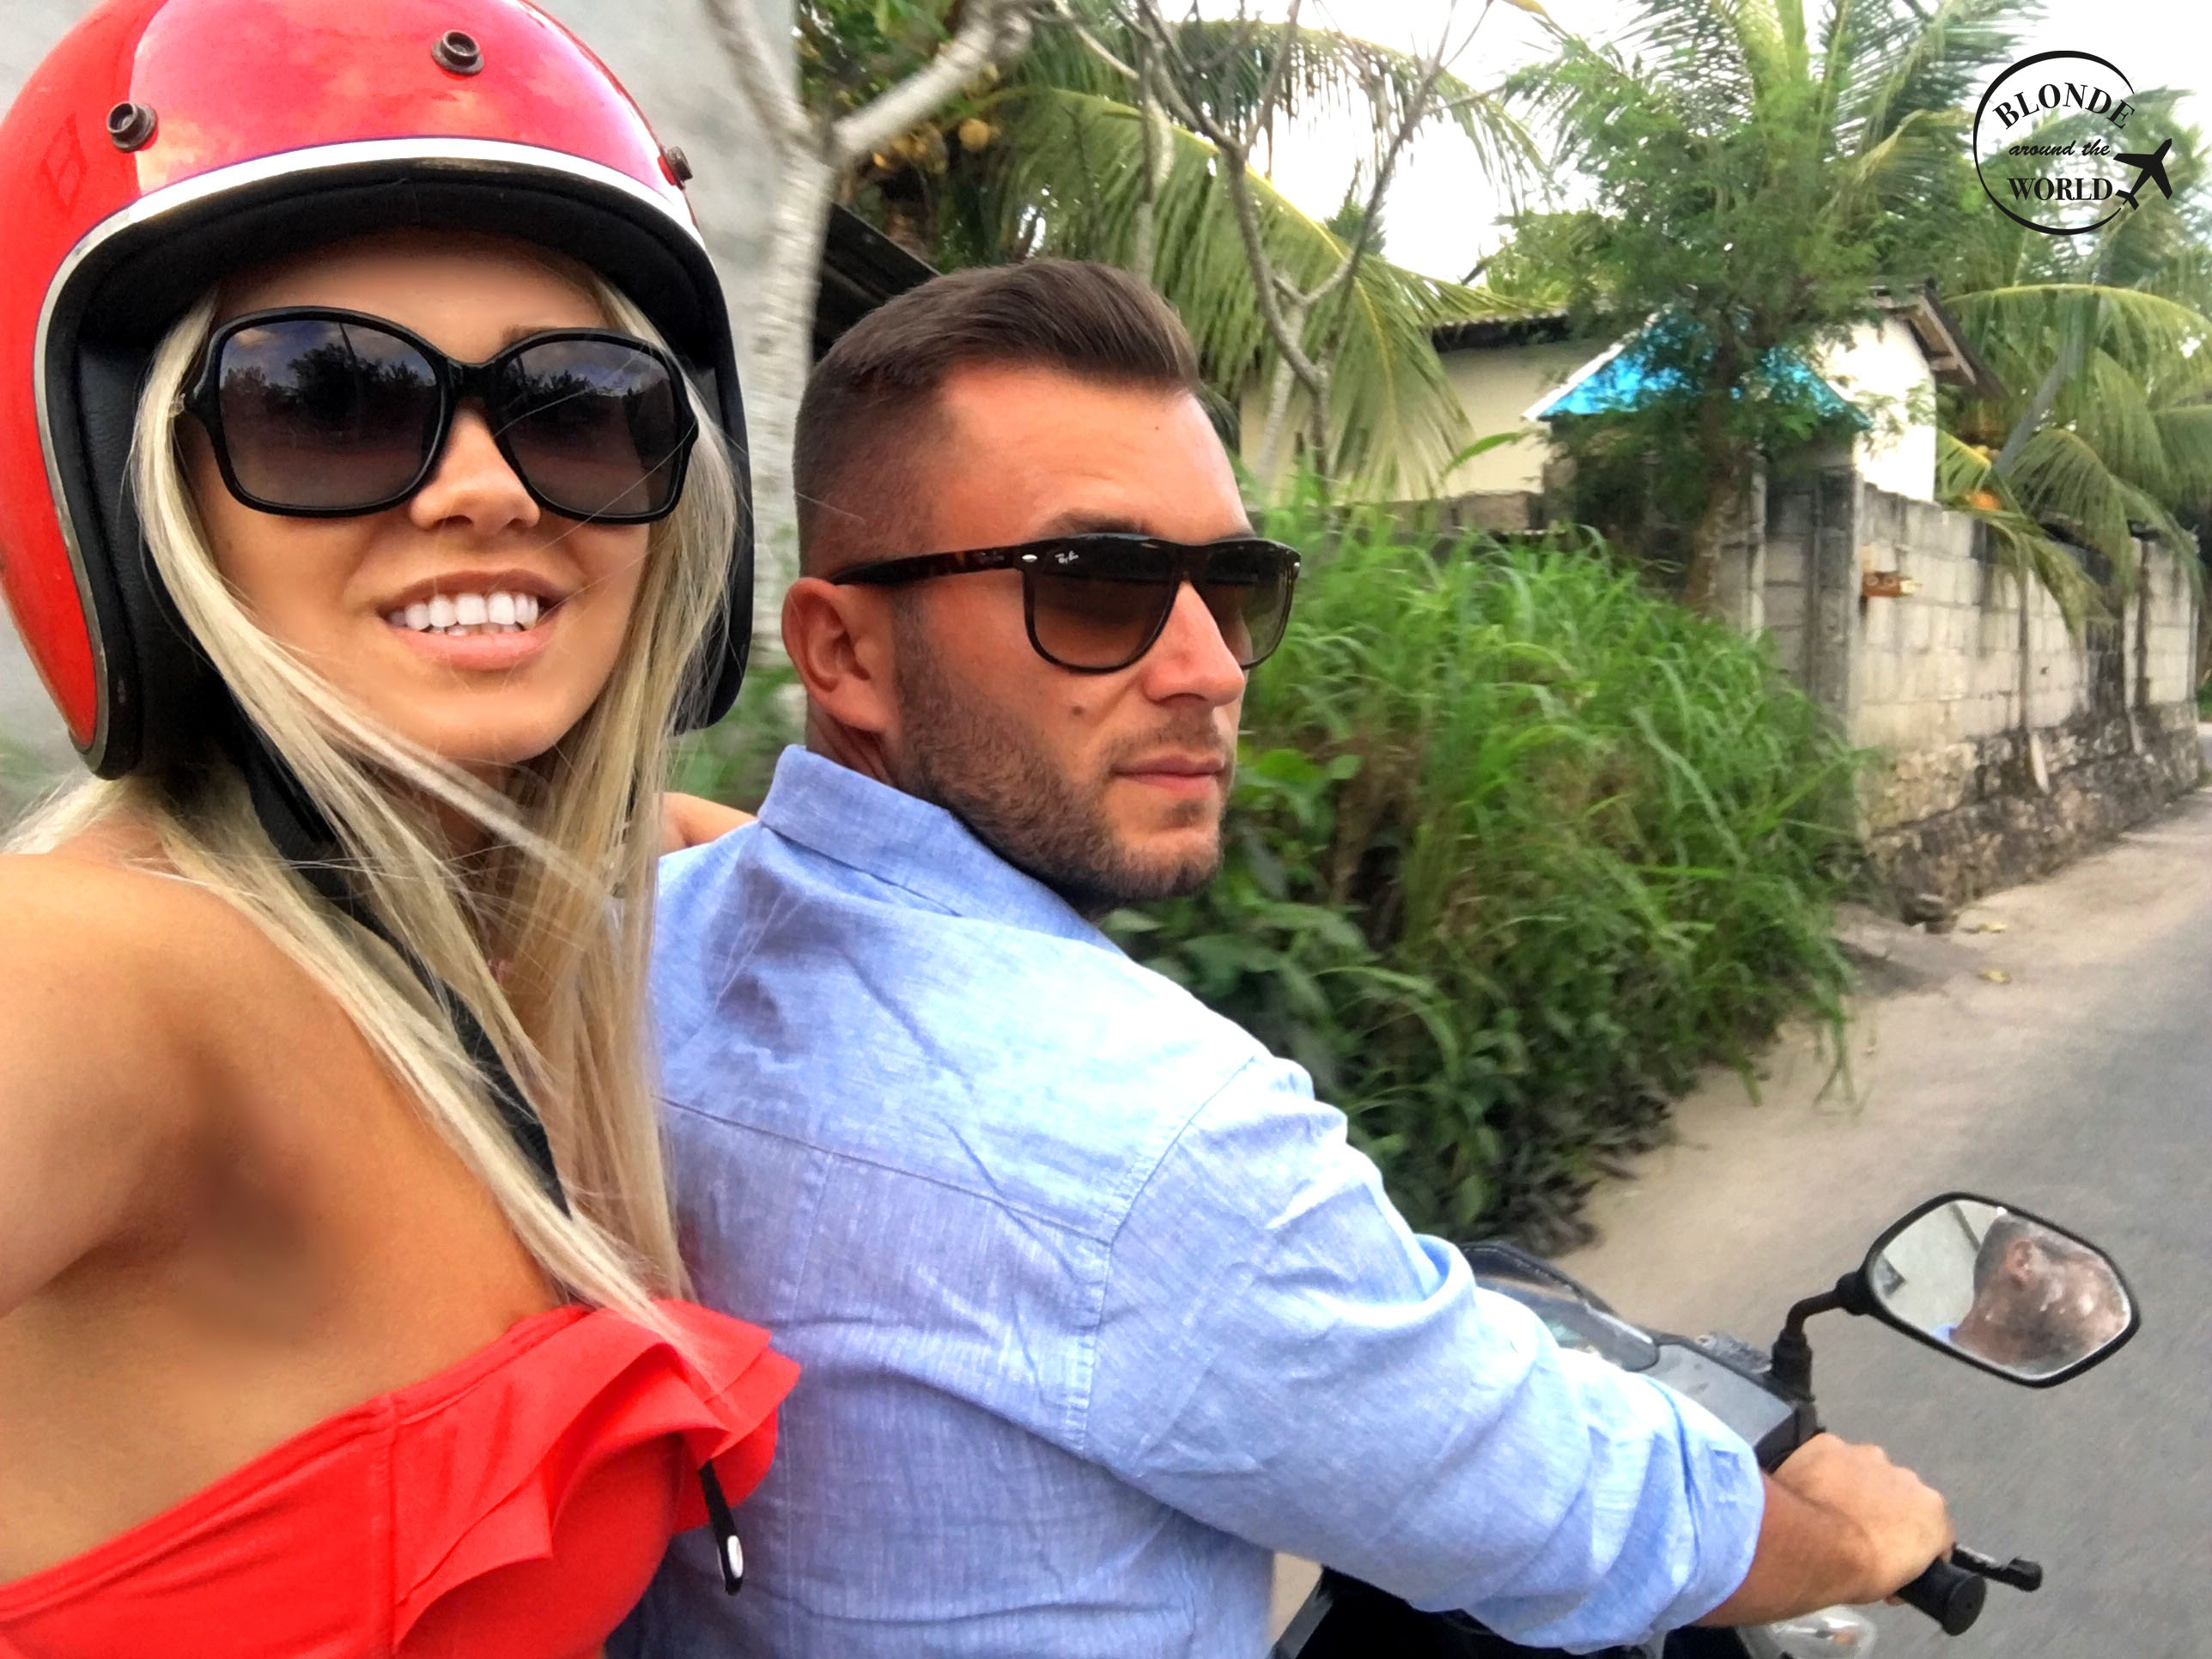 scooter-bali-couple.jpg